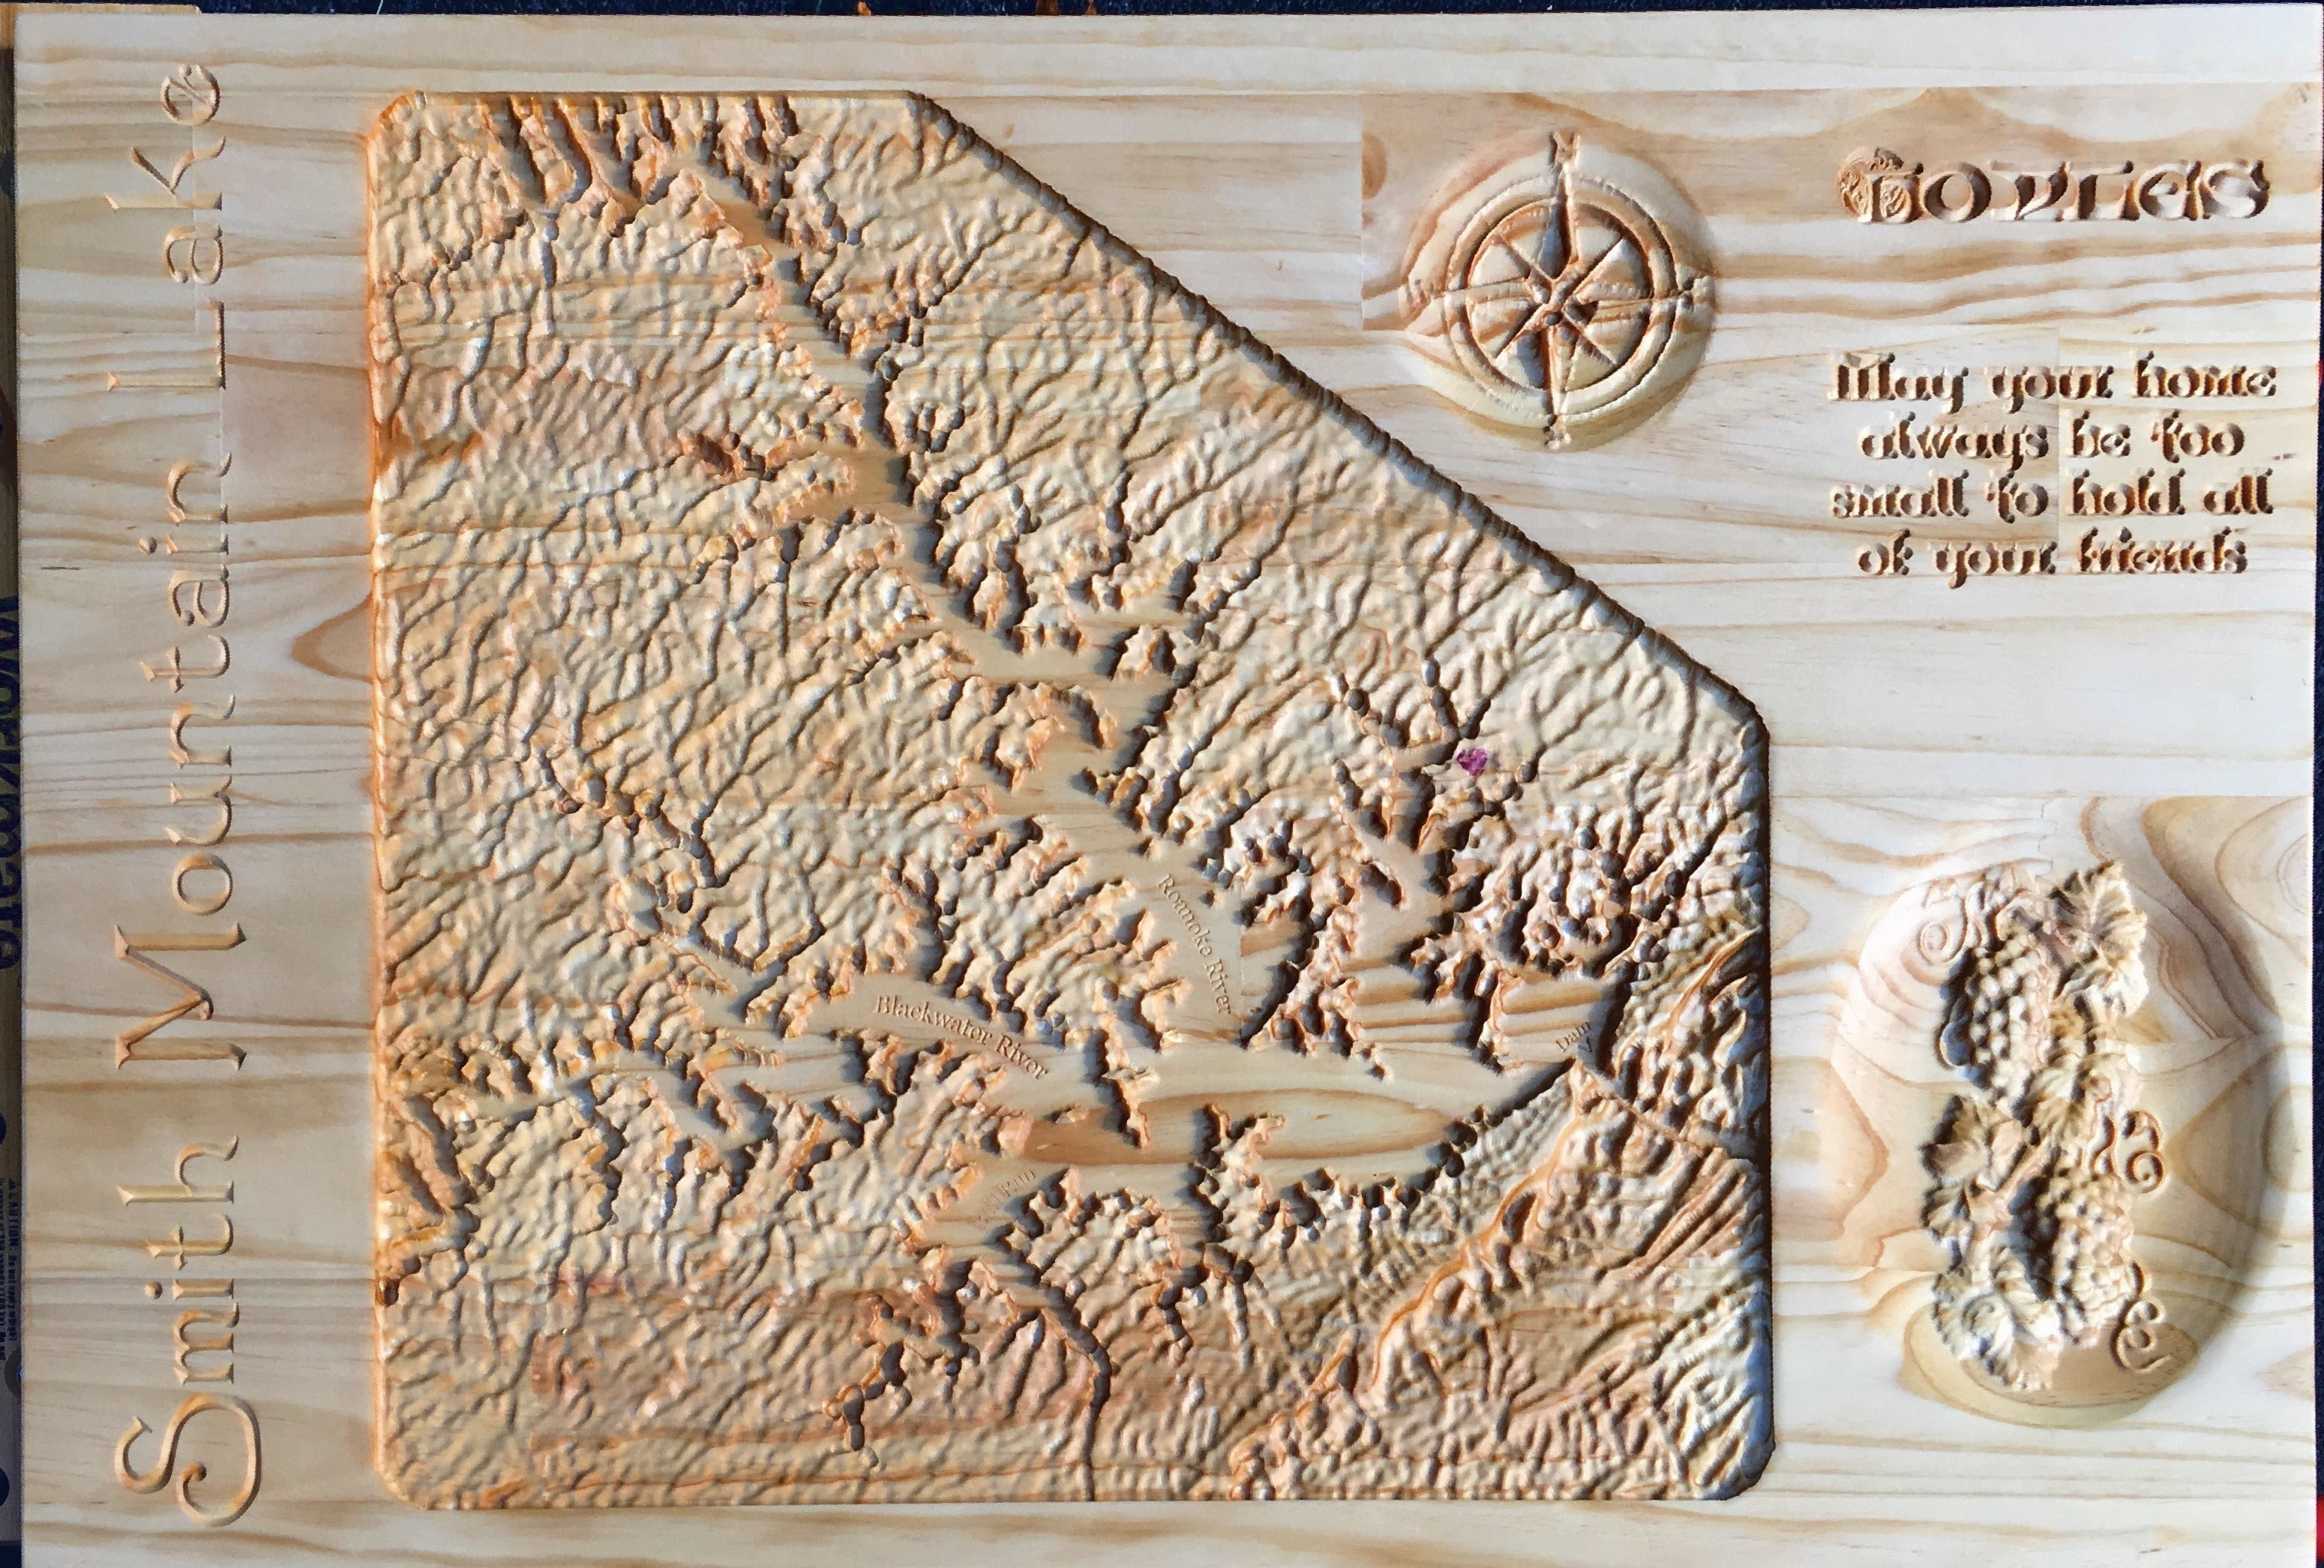 Best wood for carving detail projects inventables community forum